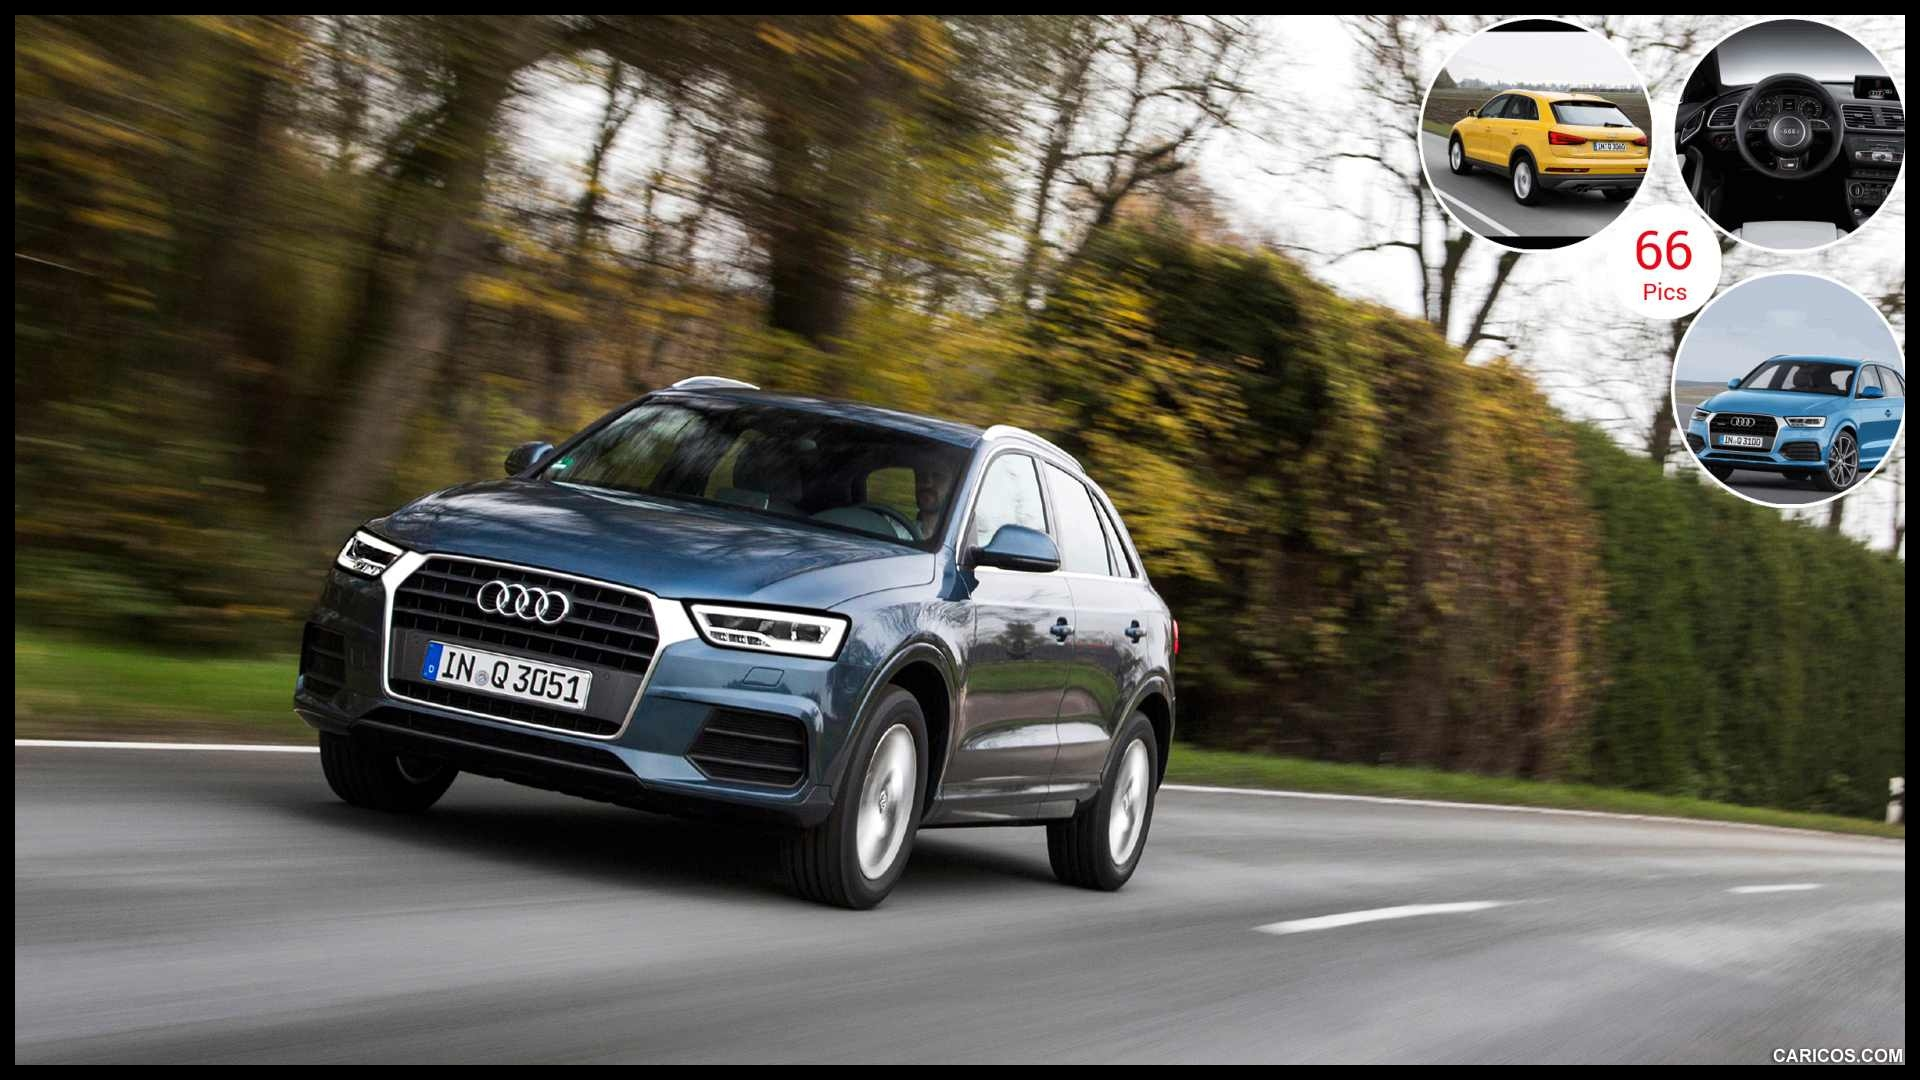 2015 Audi Q3 Utopia Blue Front 64 of 66